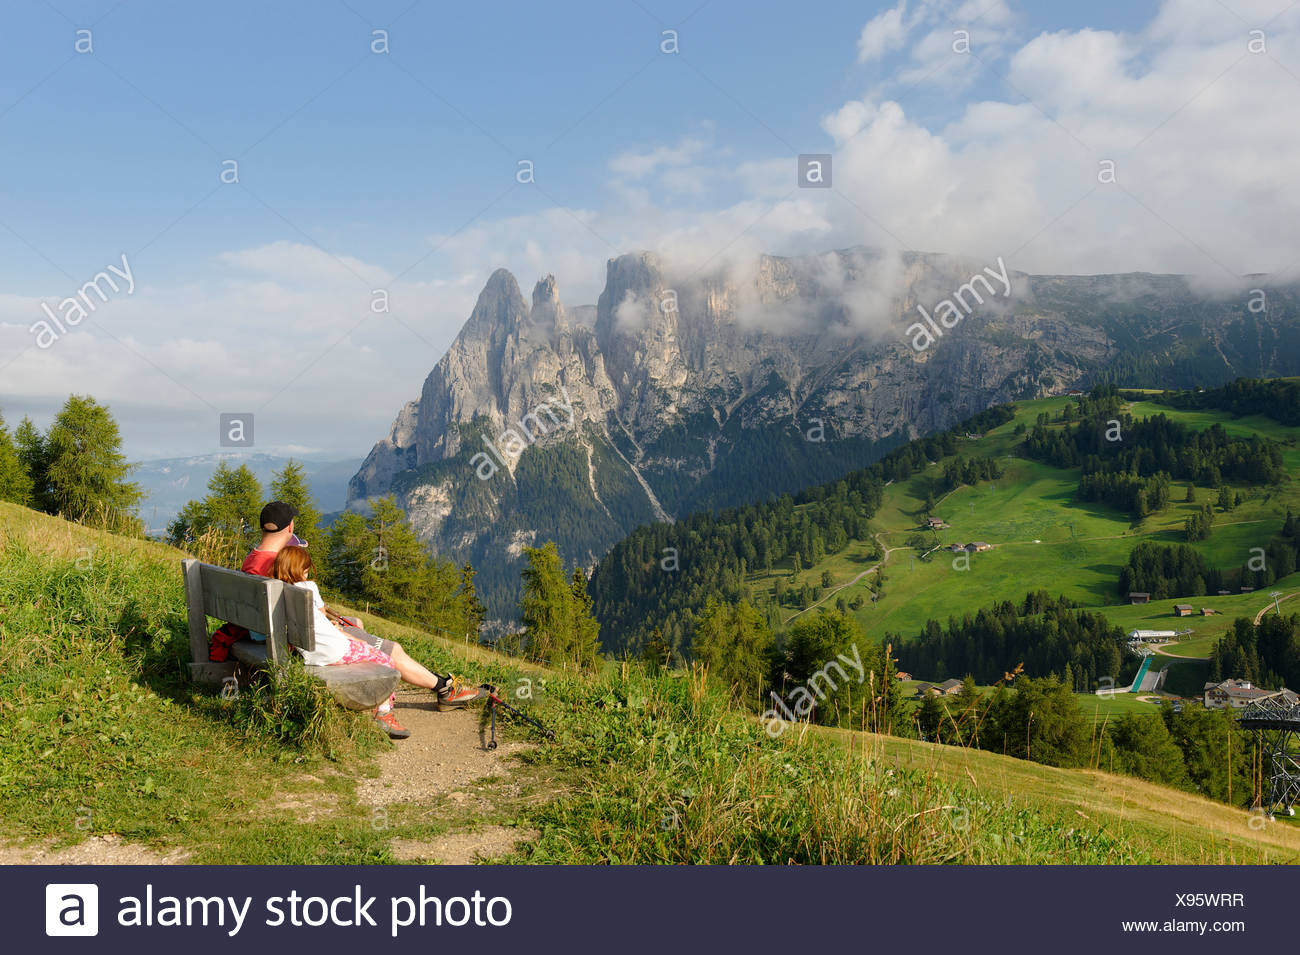 Hikers on Seiser Alm alpine pastures with Schlern Mountain, Alto Adige, Italy, Europe - Stock Image